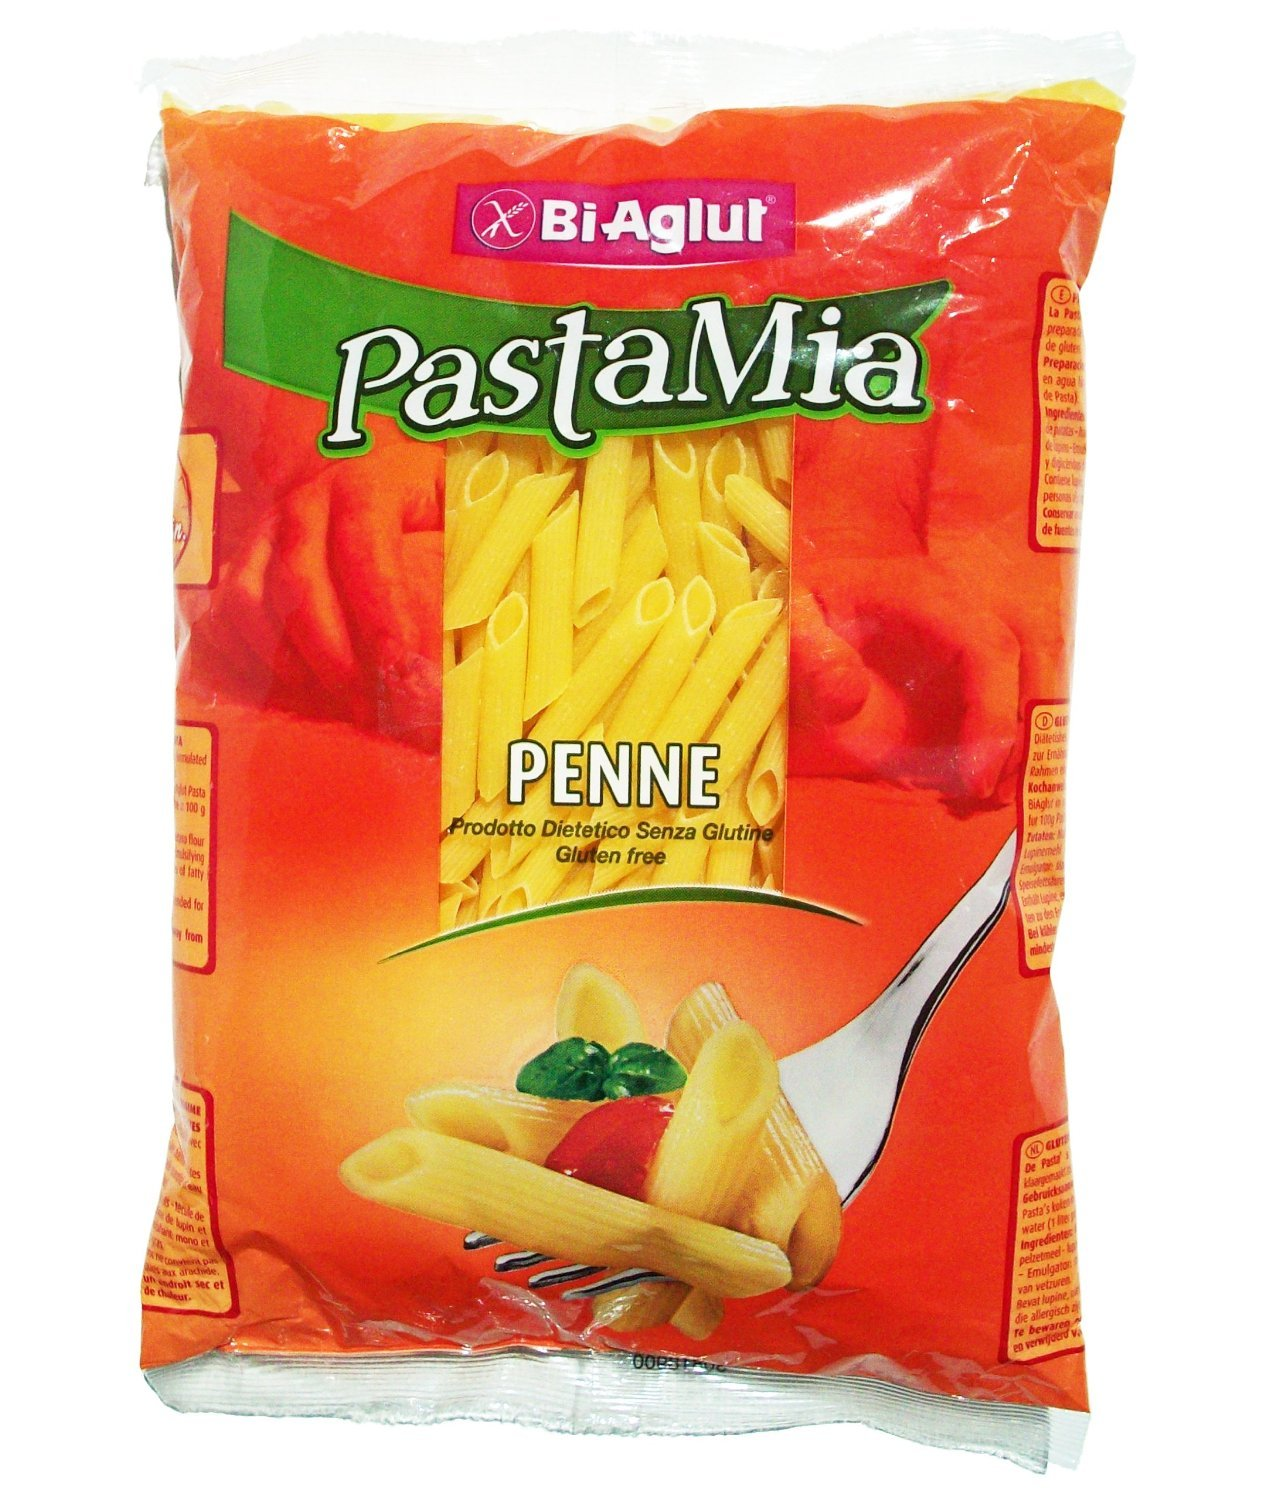 Biaglut Gluten-free Penne Pasta, 17.6 Ounce Packages (Pack of 3) by BiAglut